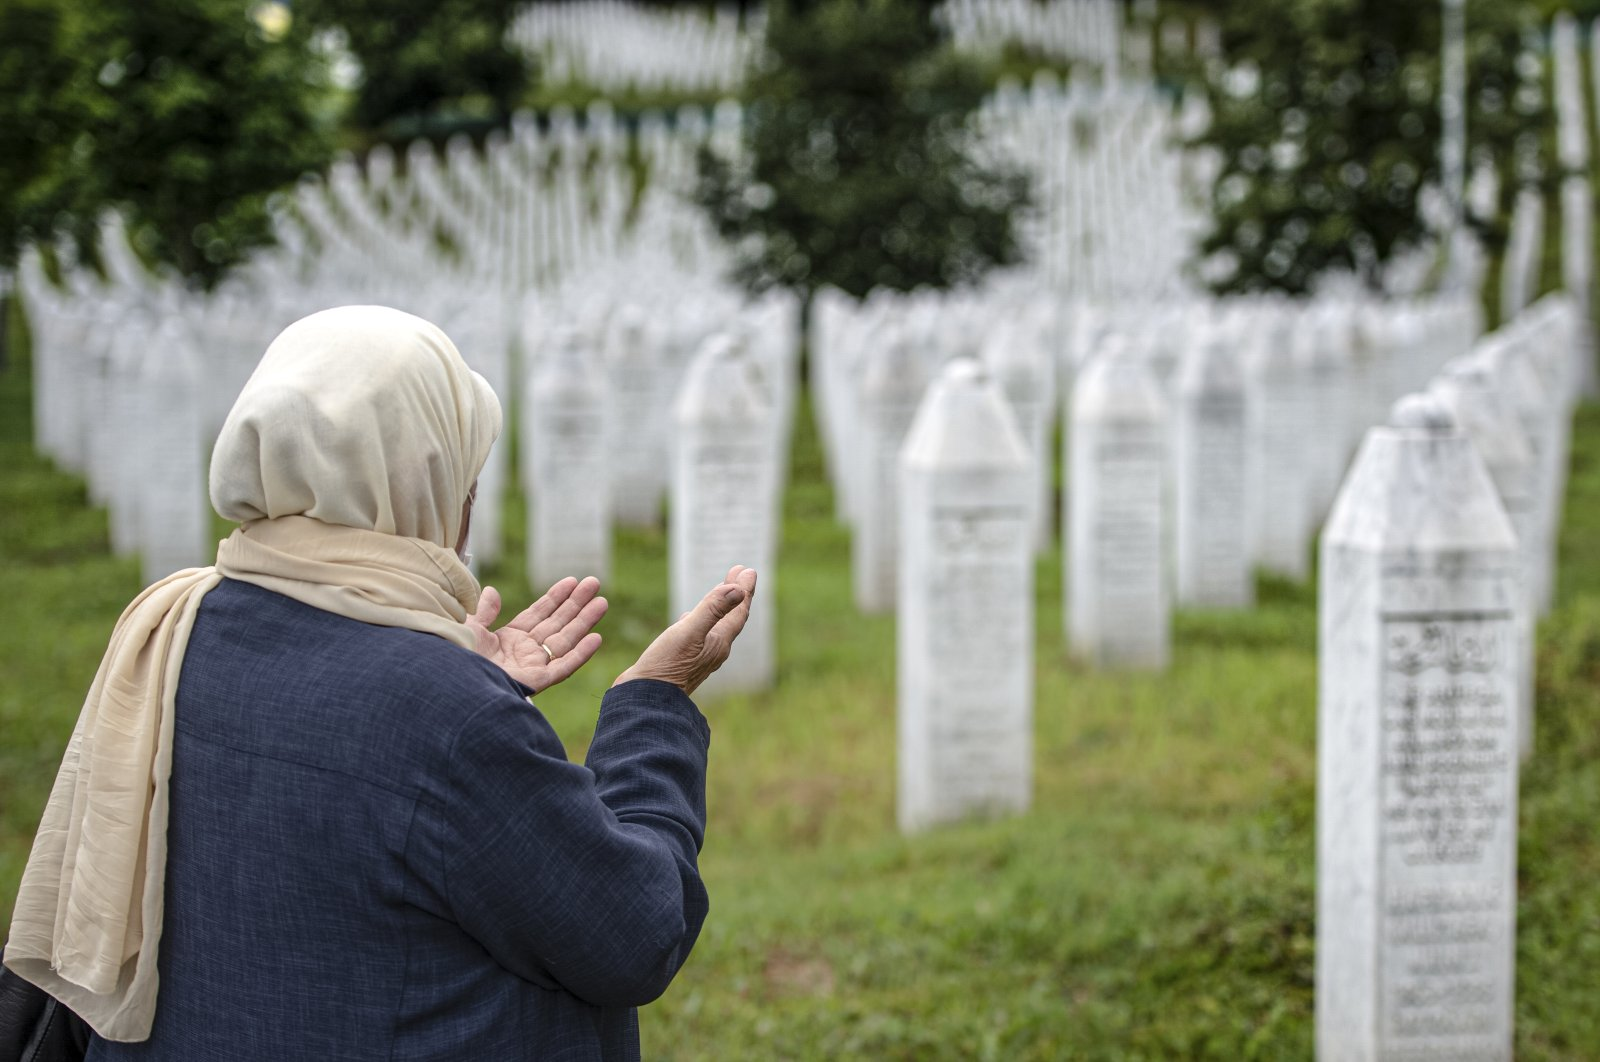 A woman prays at the memorial cemetery in Potocari, near Srebrenica, Bosnia-Herzegovina, July 7, 2020. (AP Photo)